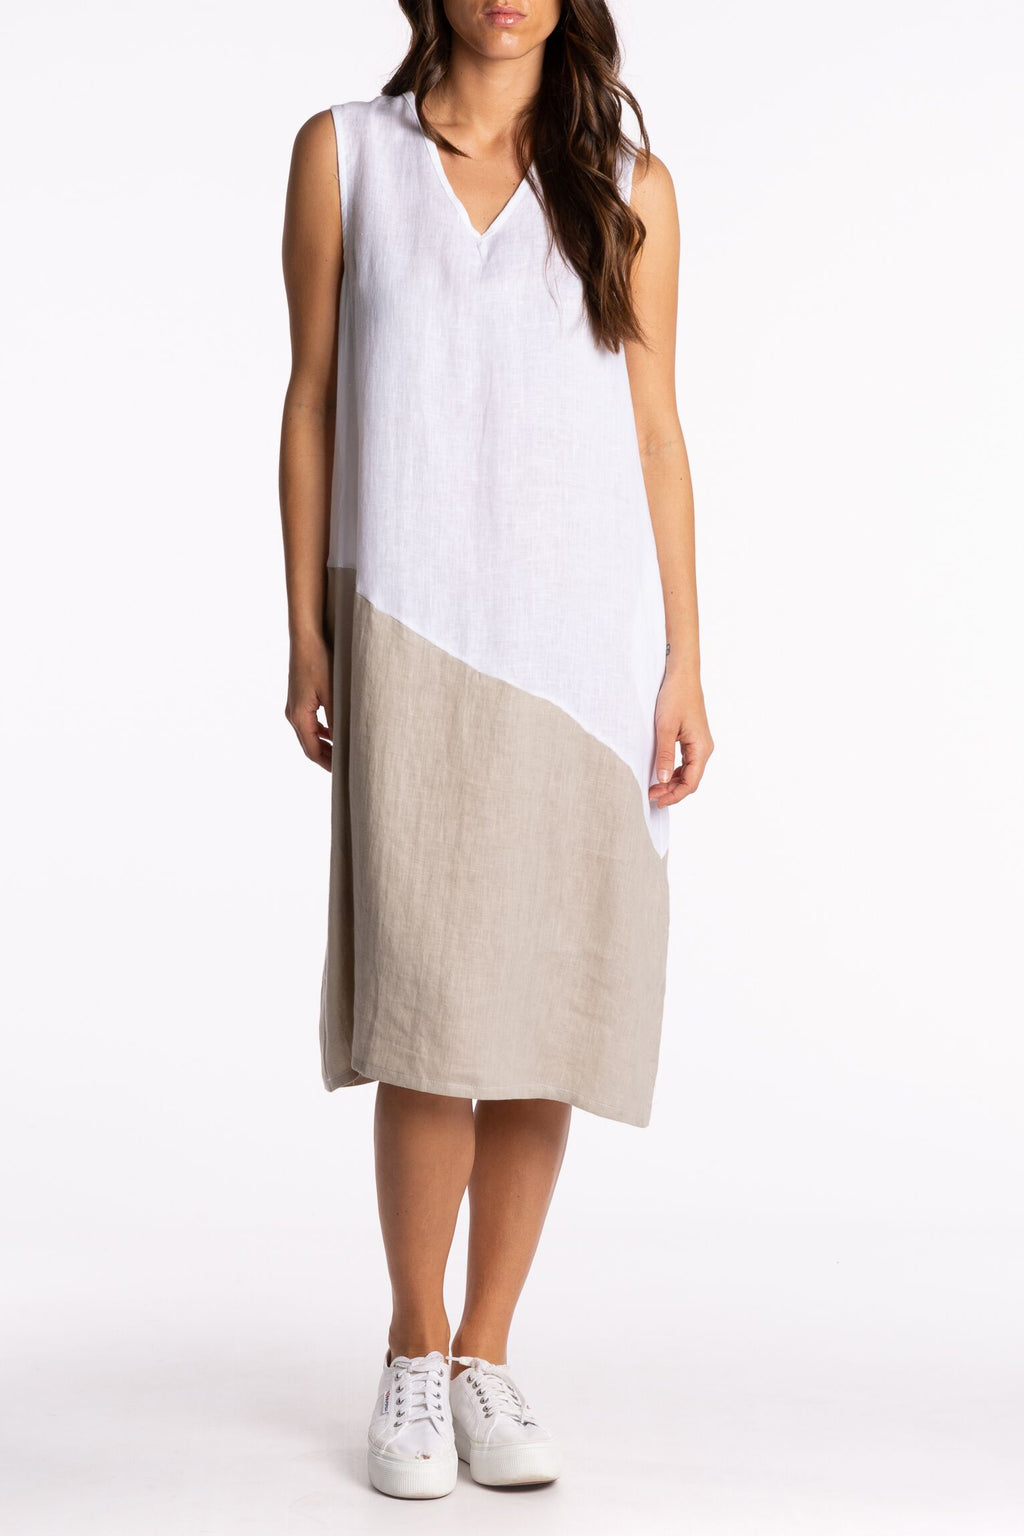 Ridley Sleeveless Dress White/Beige